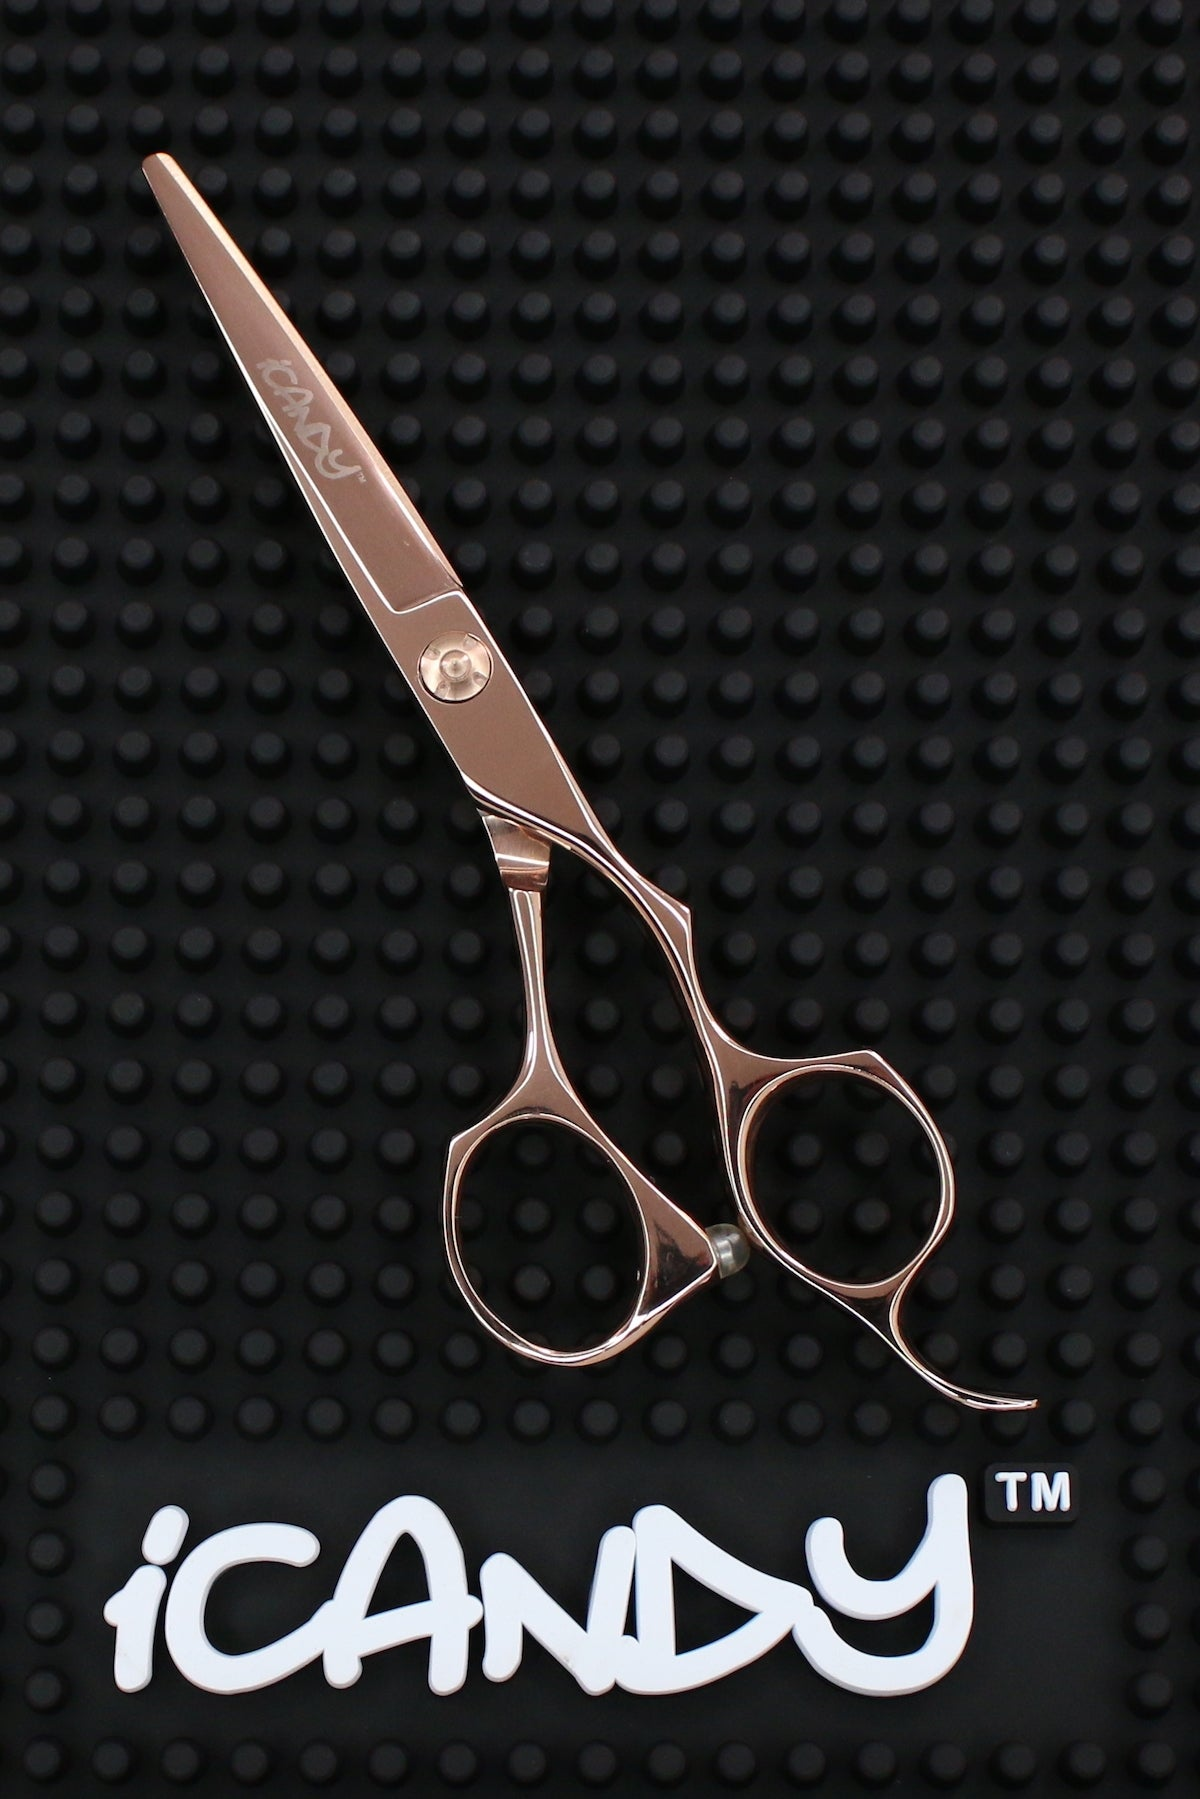 iCandy LUXE Element VG10 Rose Gold Hairdressing Scissor  (5.5 inch) Limited Edition! - iCandy Scissors